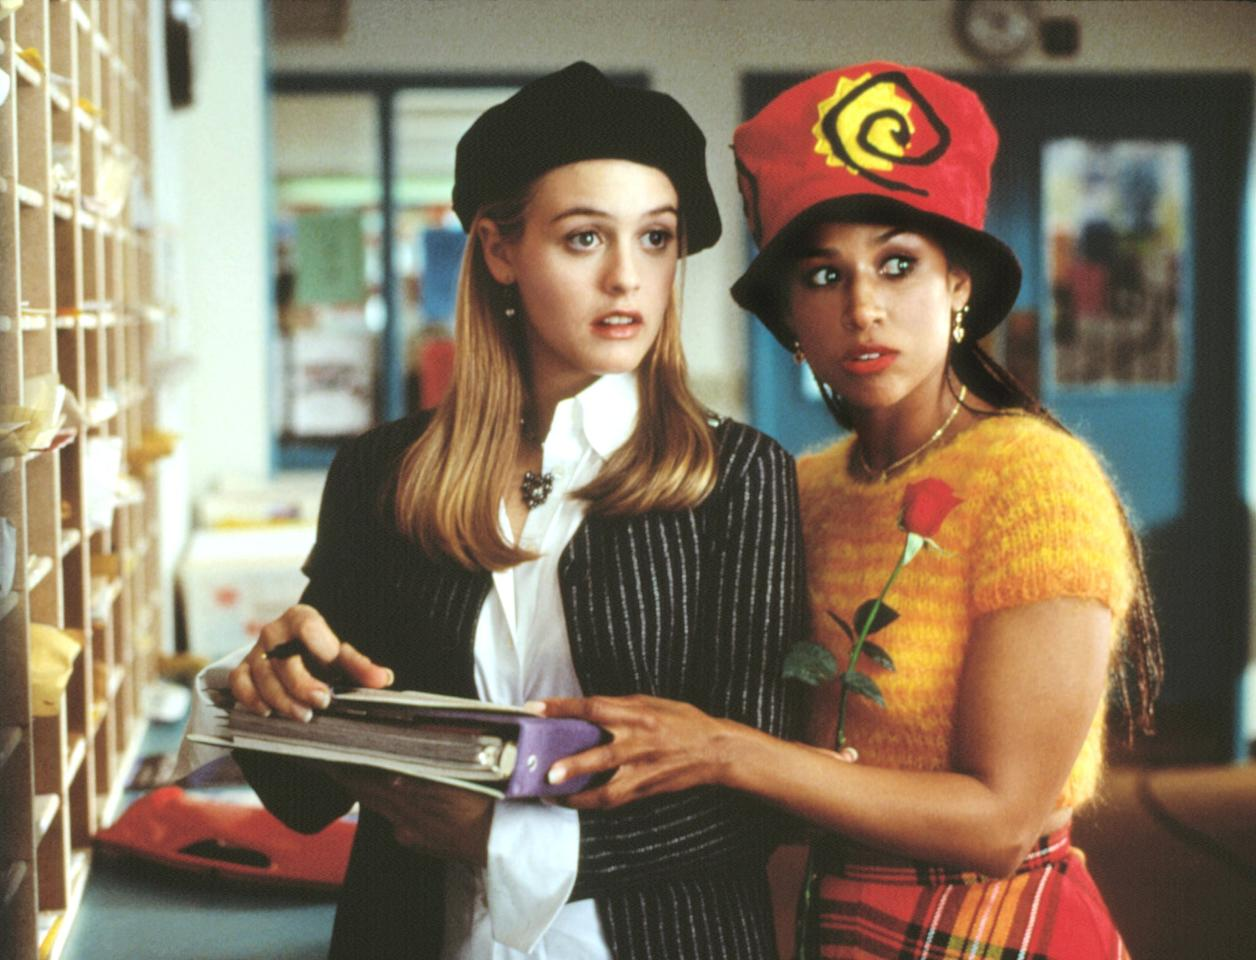 """<p>Before <strong>Clueless</strong> became the phenomenon that it is today, <a href=""""https://ew.com/article/2012/10/05/clueless-1995/"""" target=""""_blank"""" class=""""ga-track"""" data-ga-category=""""Related"""" data-ga-label=""""https://ew.com/article/2012/10/05/clueless-1995/"""" data-ga-action=""""In-Line Links"""">Heckerling pitched it to Fox as a series</a> before it arrived at Paramount. In an interview with <strong>Entertainment Weekly</strong>, the writer-director said, """"[W]hen I first pitched it as a TV show, it was called <strong>No Worries</strong>. Twentieth Century Fox said they wanted a show about teenagers - but not the nerds. They wanted it to be about the cool kids."""" After the success of the movie, there really was a brief teen sitcom on ABC and UPN called <strong>Clueless</strong>, and there might be an <a href=""""https://www.popsugar.com/entertainment/clueless-mystery-drama-tv-series-details-46778319"""" class=""""ga-track"""" data-ga-category=""""Related"""" data-ga-label=""""http://www.popsugar.com/entertainment/clueless-mystery-drama-tv-series-details-46778319"""" data-ga-action=""""In-Line Links"""">upcoming mystery TV series</a> in the works as well. </p>"""